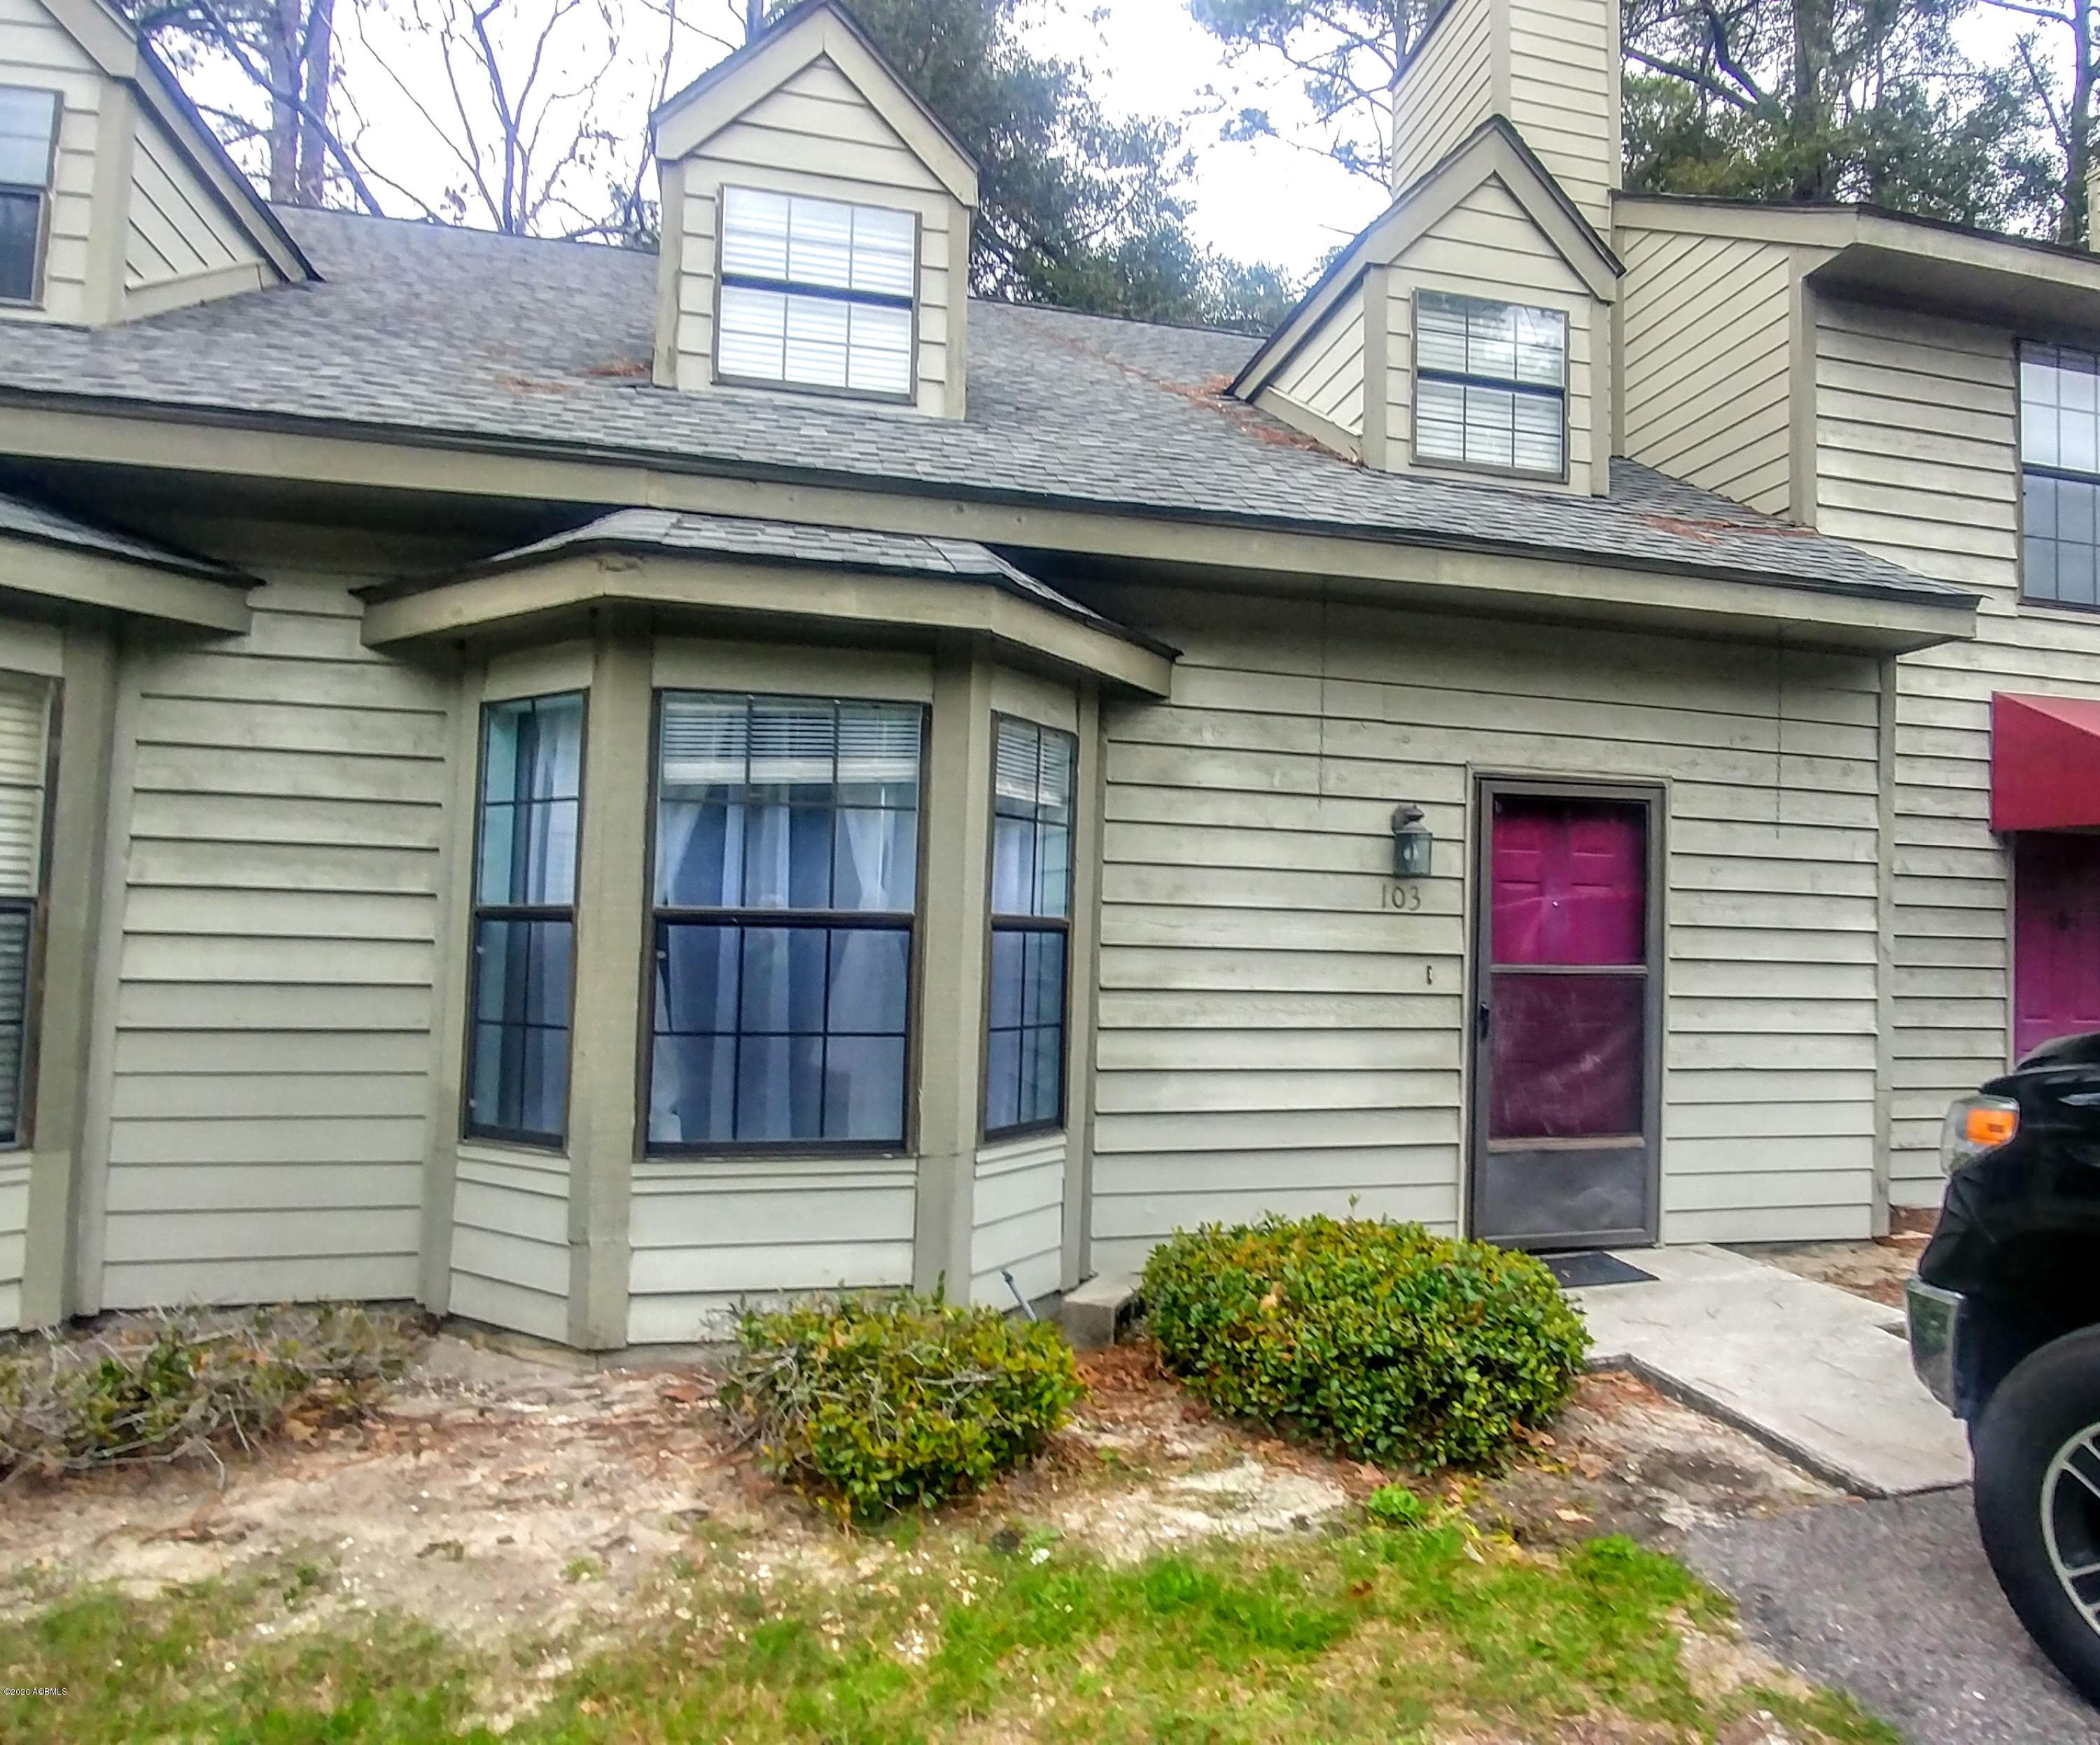 Photo of 103 Island Pines Drive, Port Royal, SC 29935